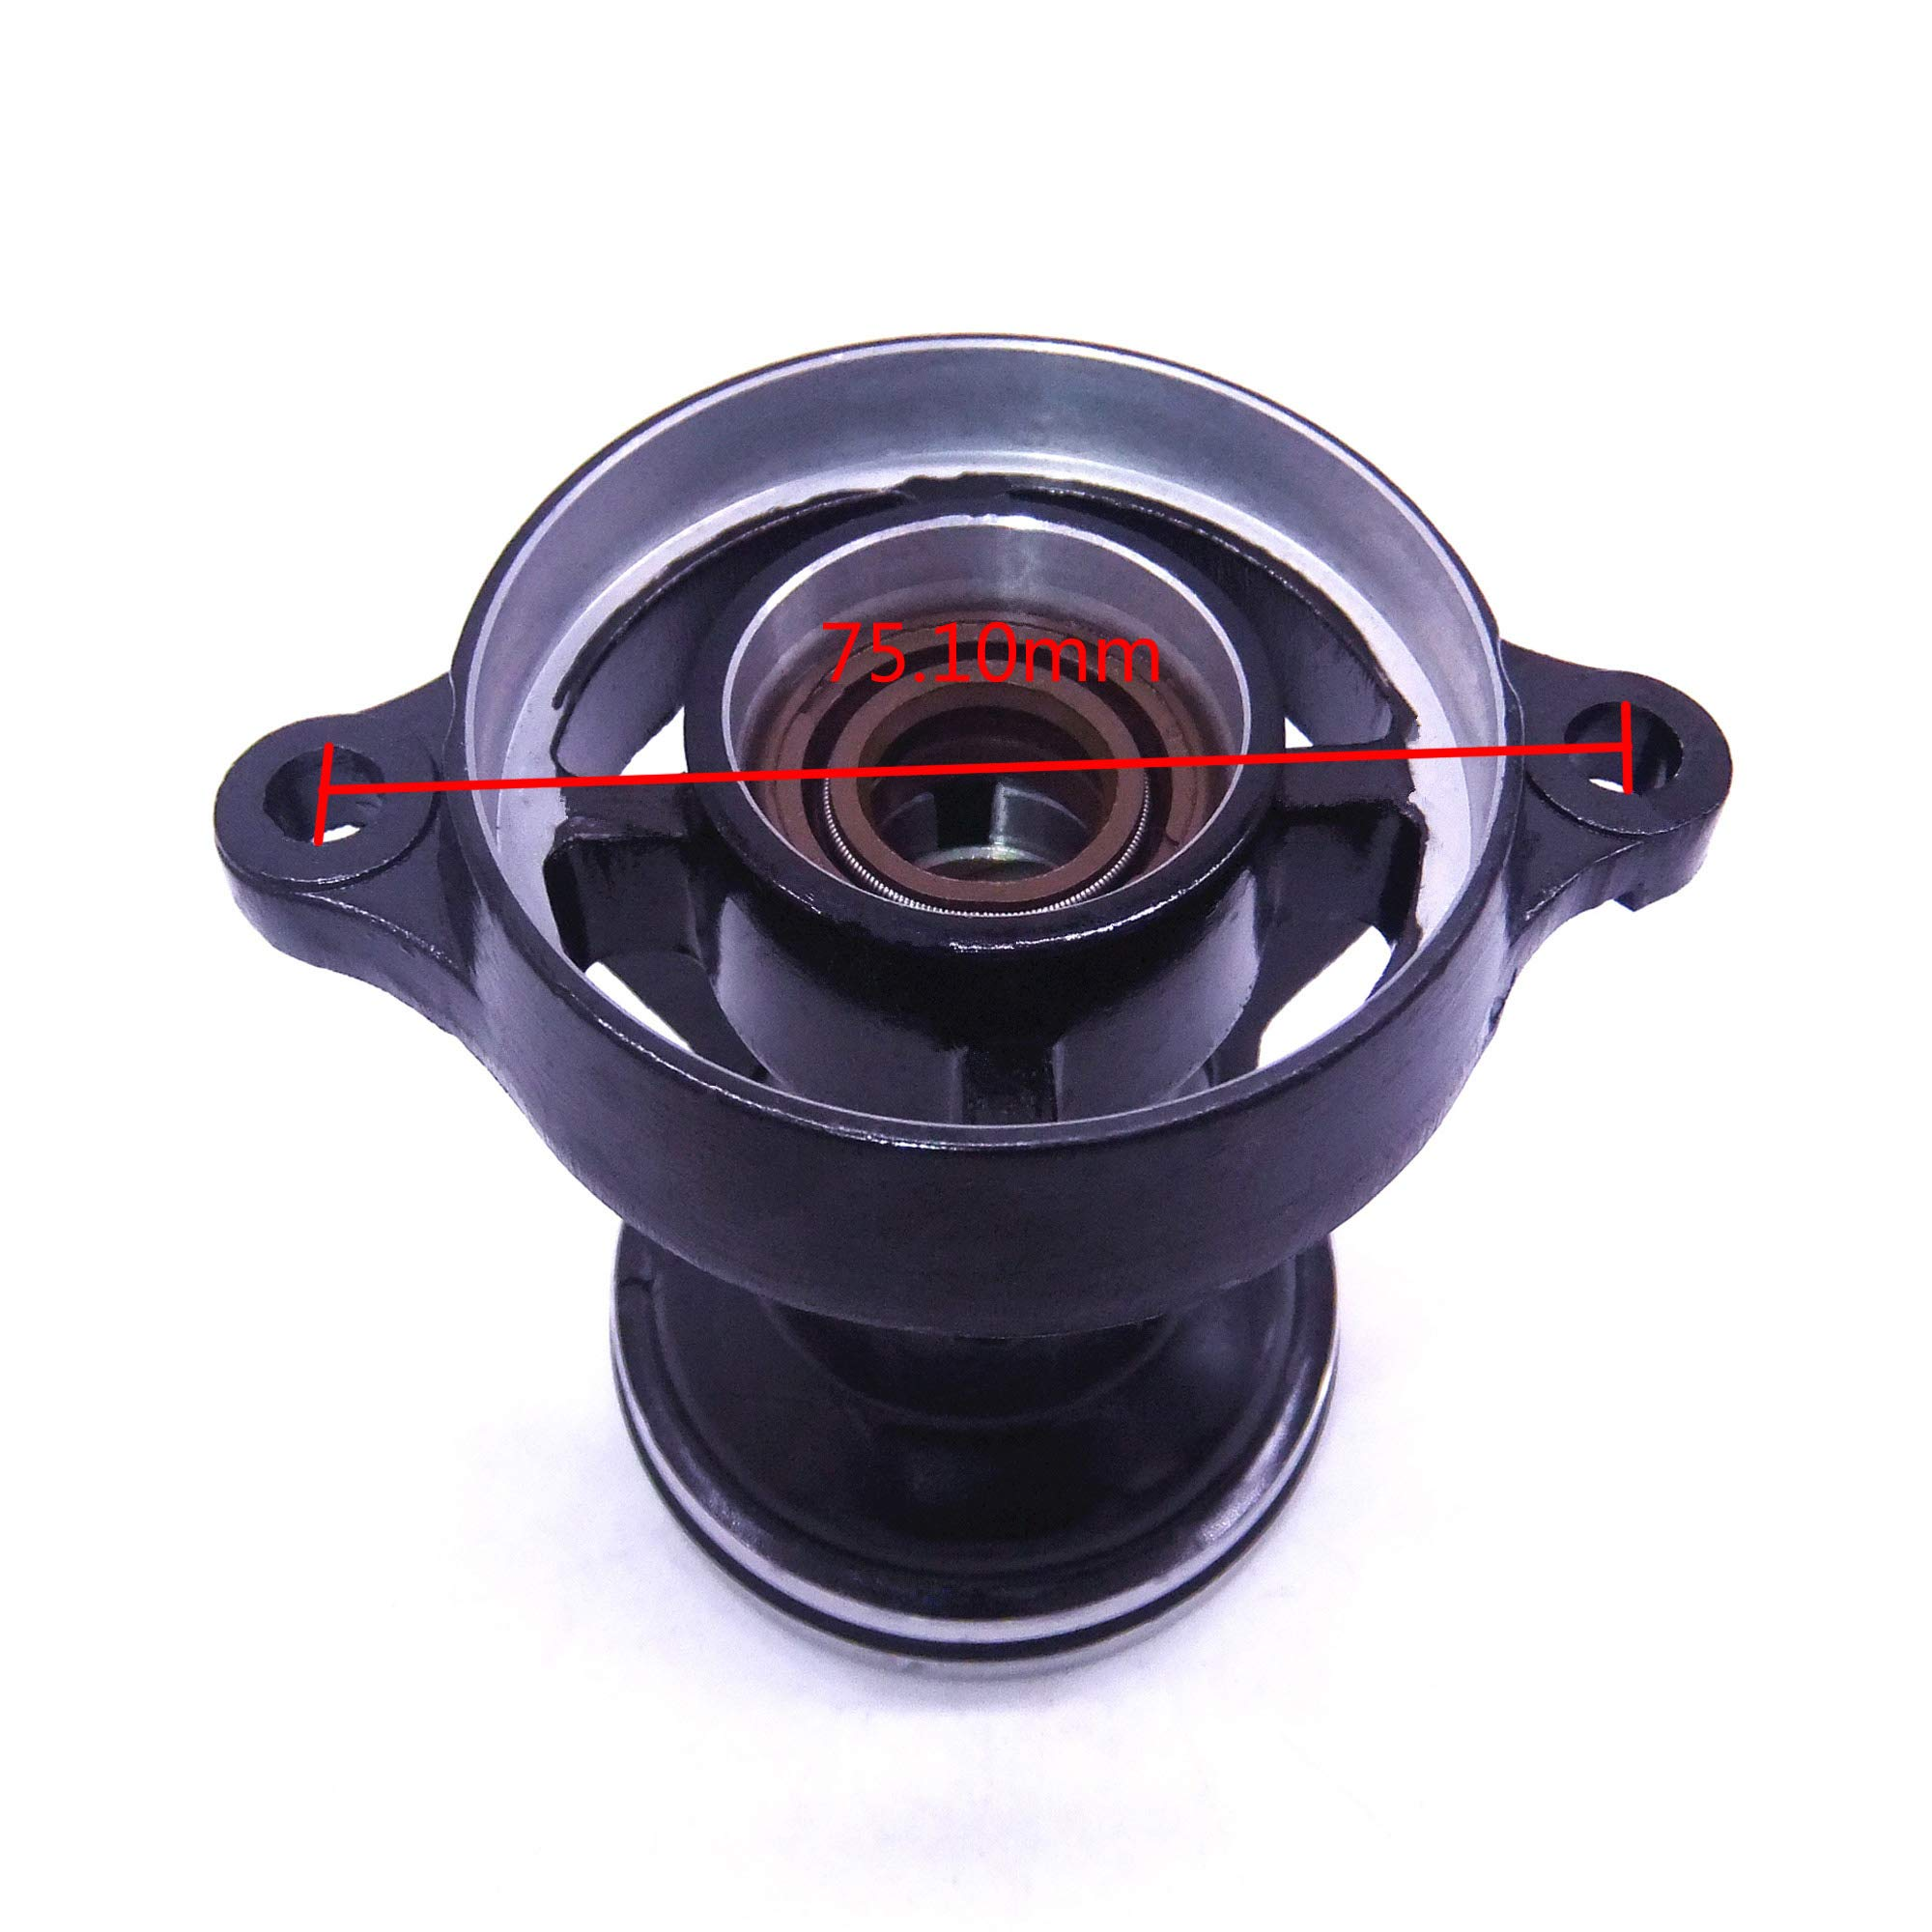 Boat Motor 3B2S60100-0 Propeller Shaft Housing Assy/Lower Casing Cap Assy for Tohatsu Nissan 8HP 9.8HP Outboard Engine